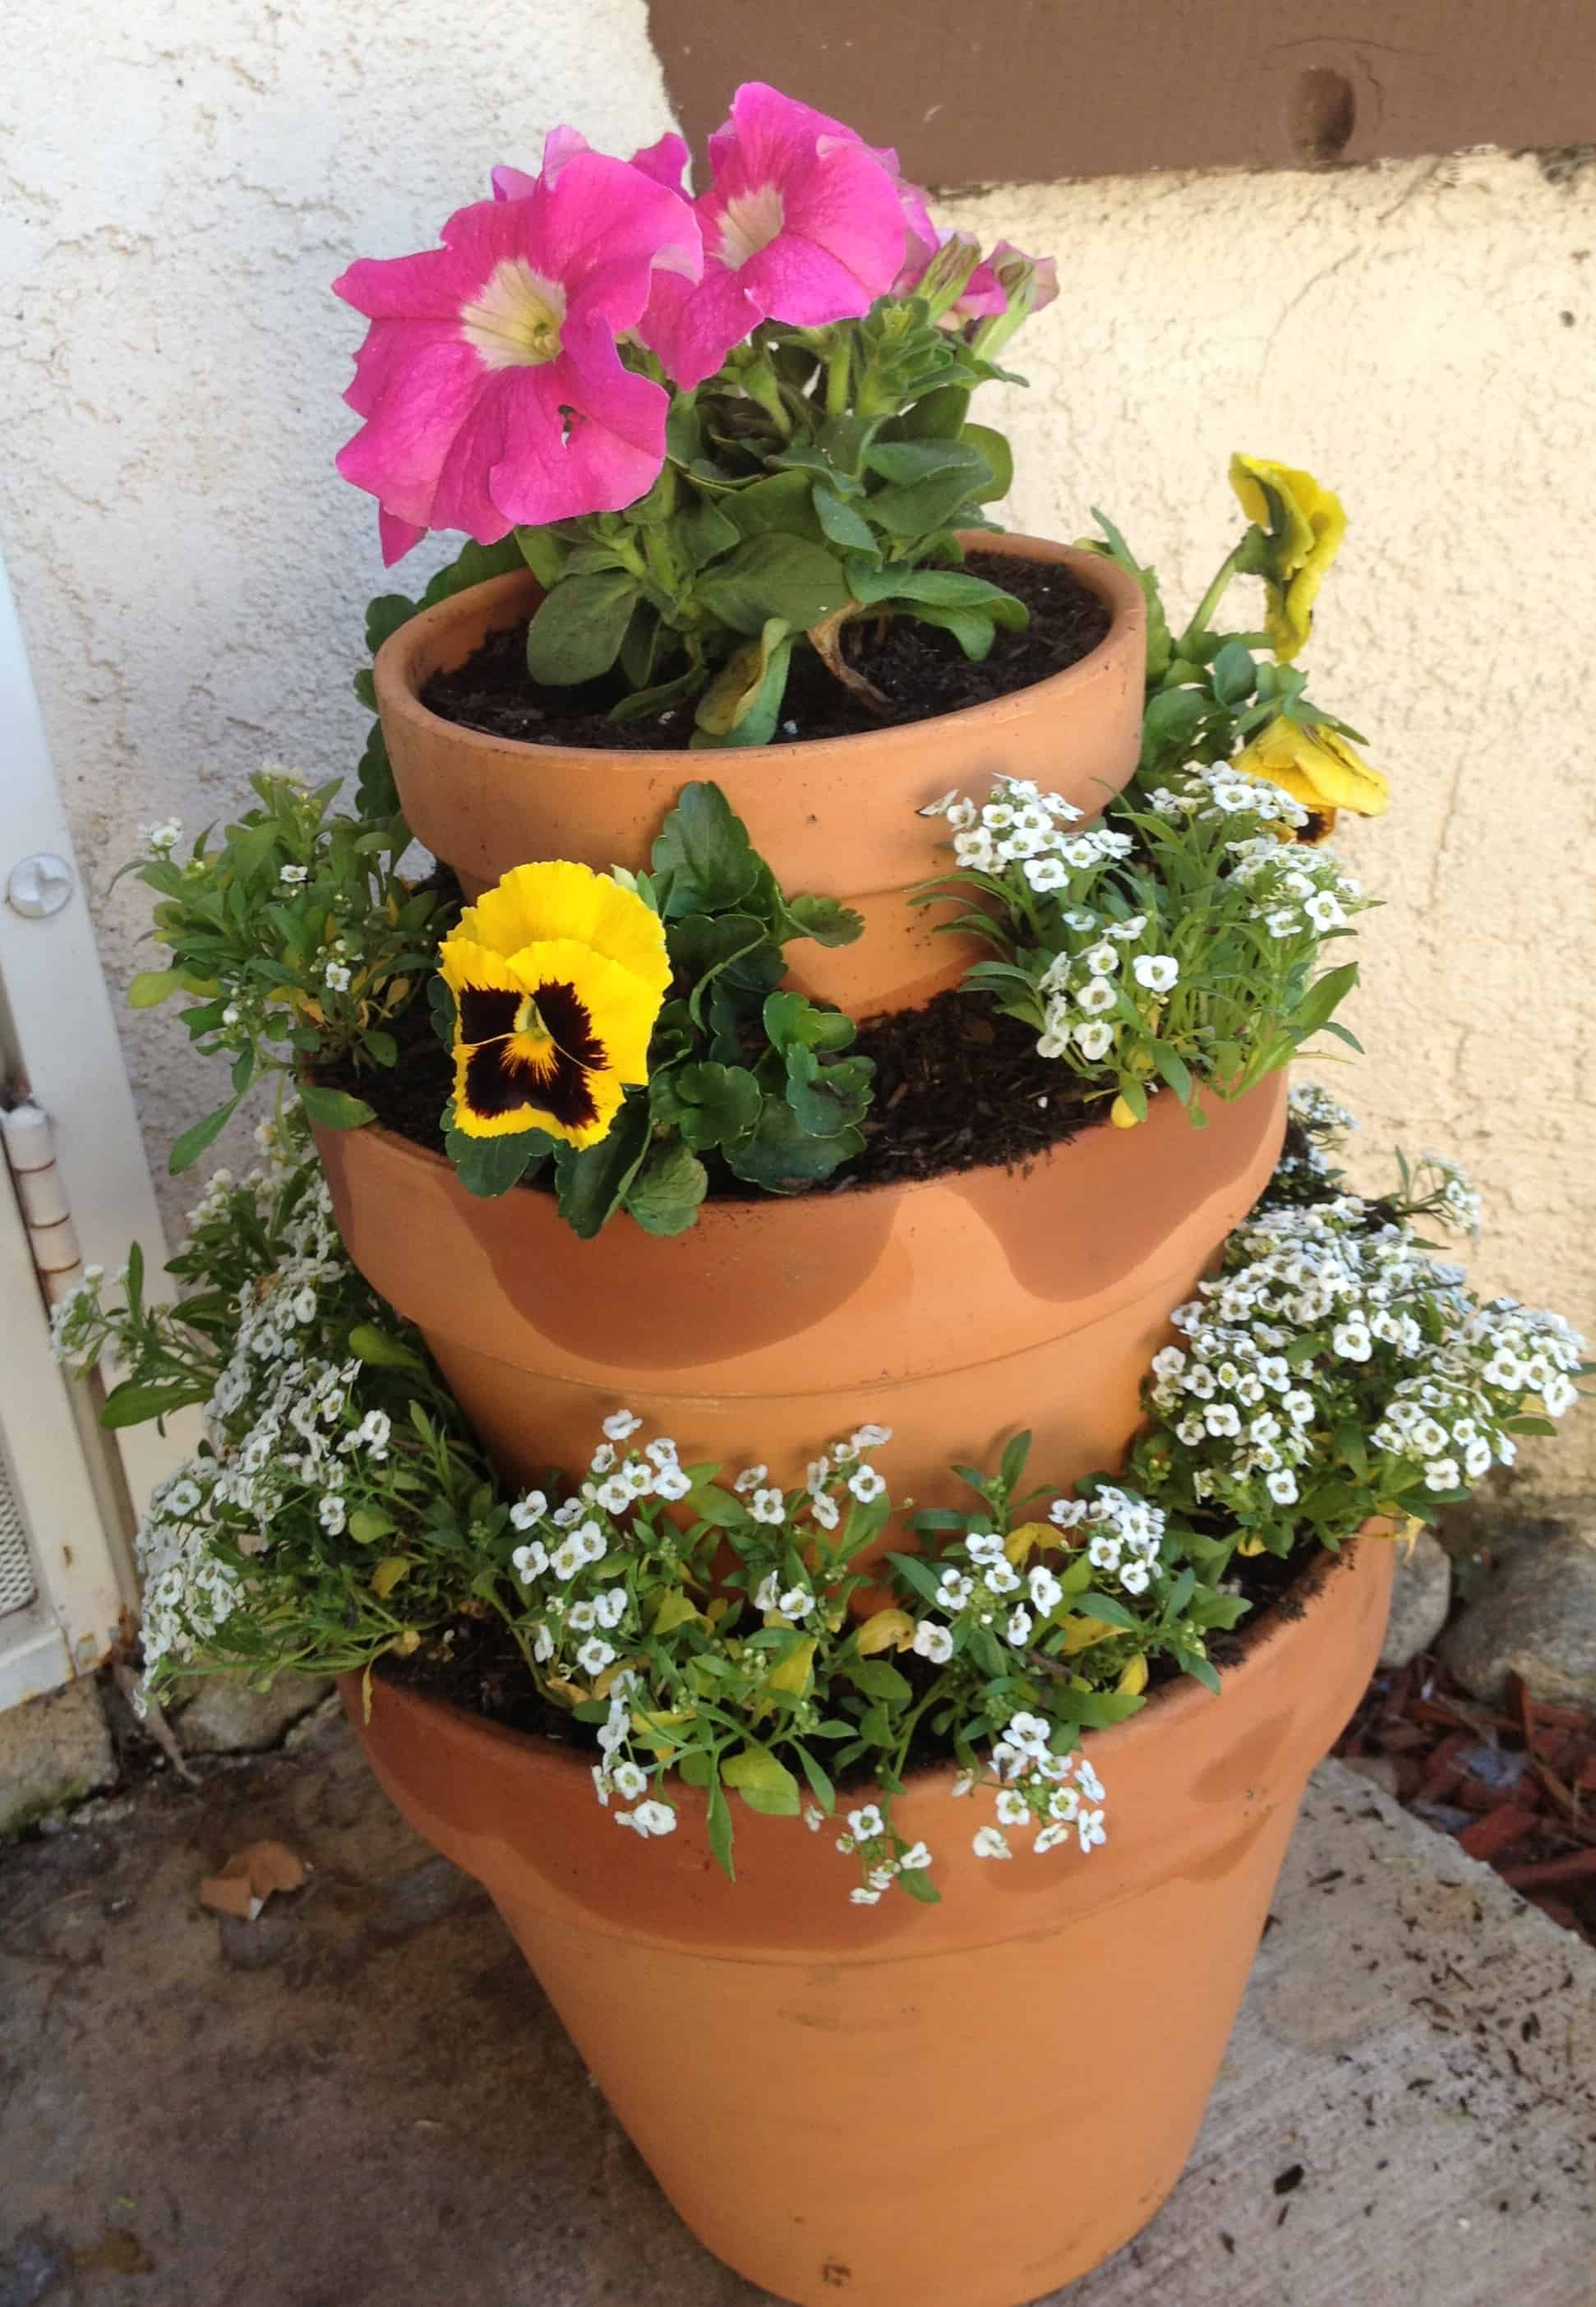 Day 278: Flower Tower